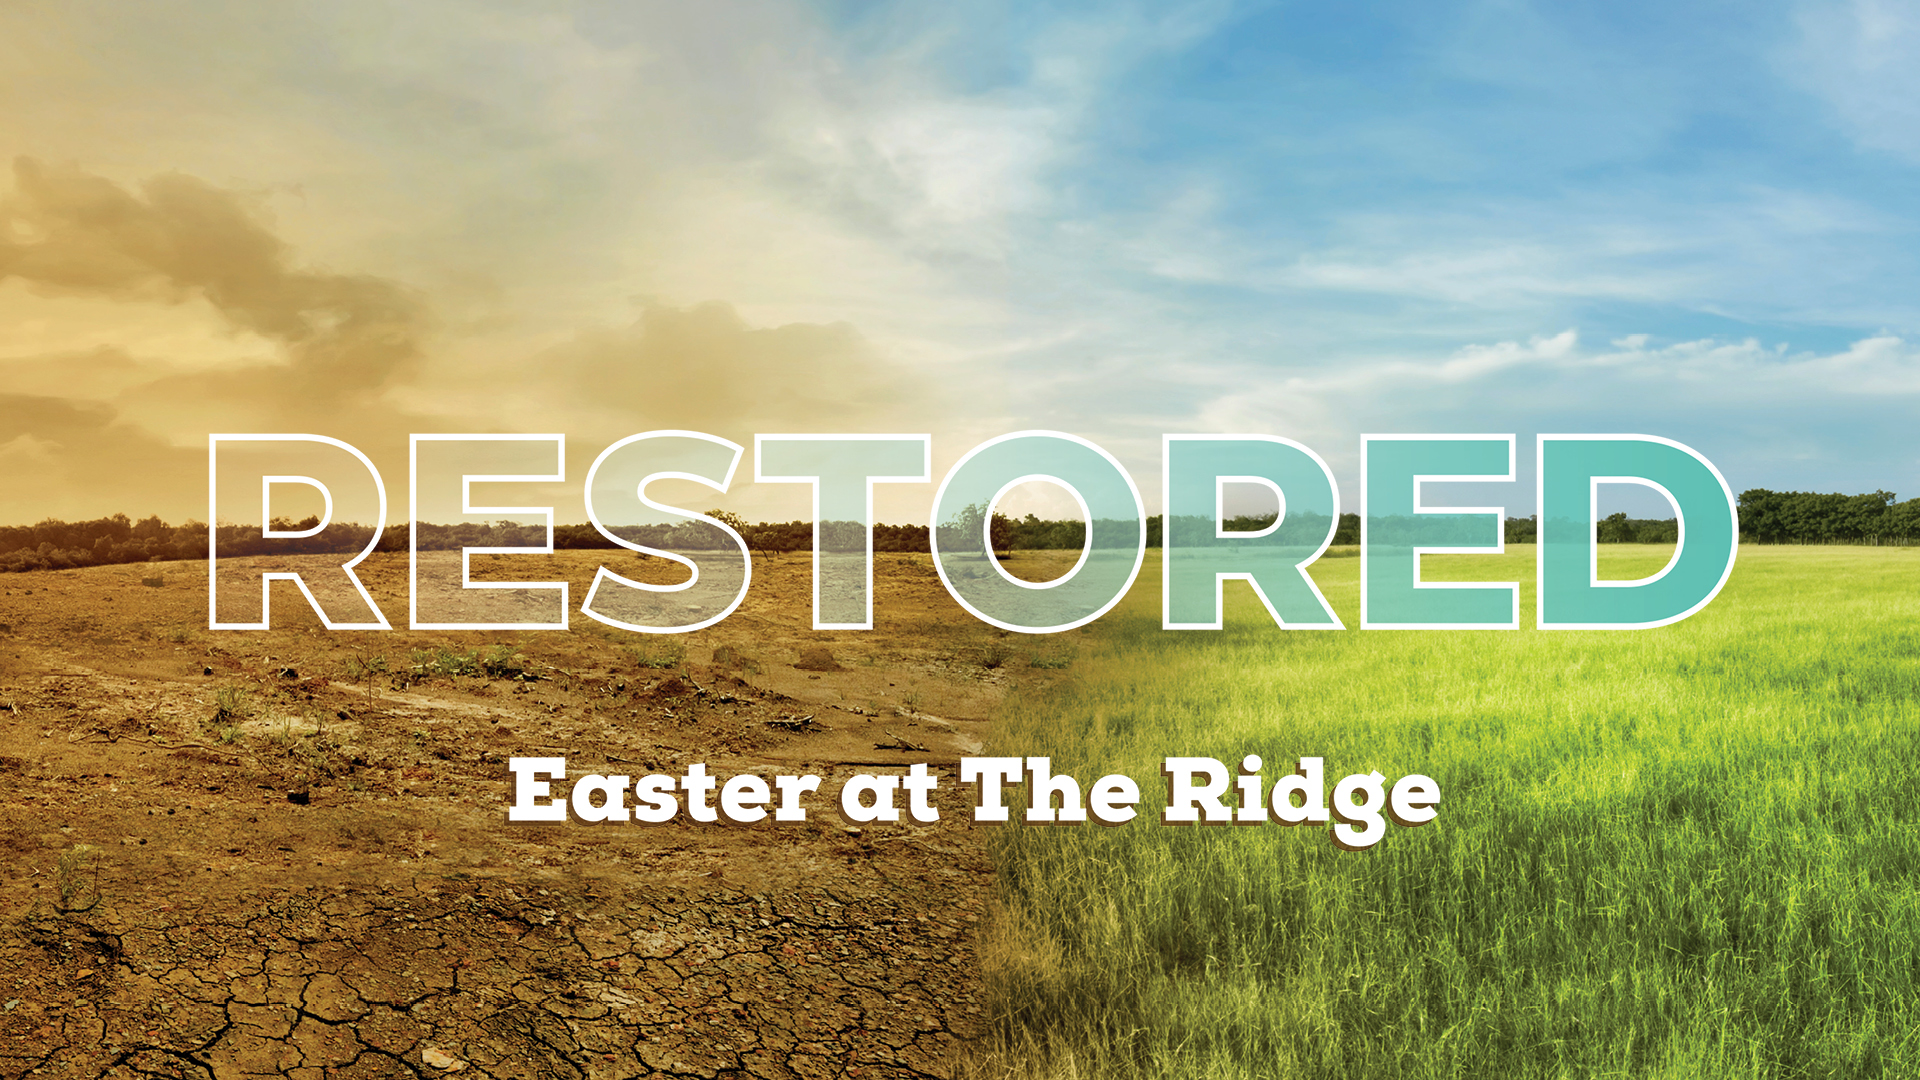 RESTORED - Easter at The Ridge - Online